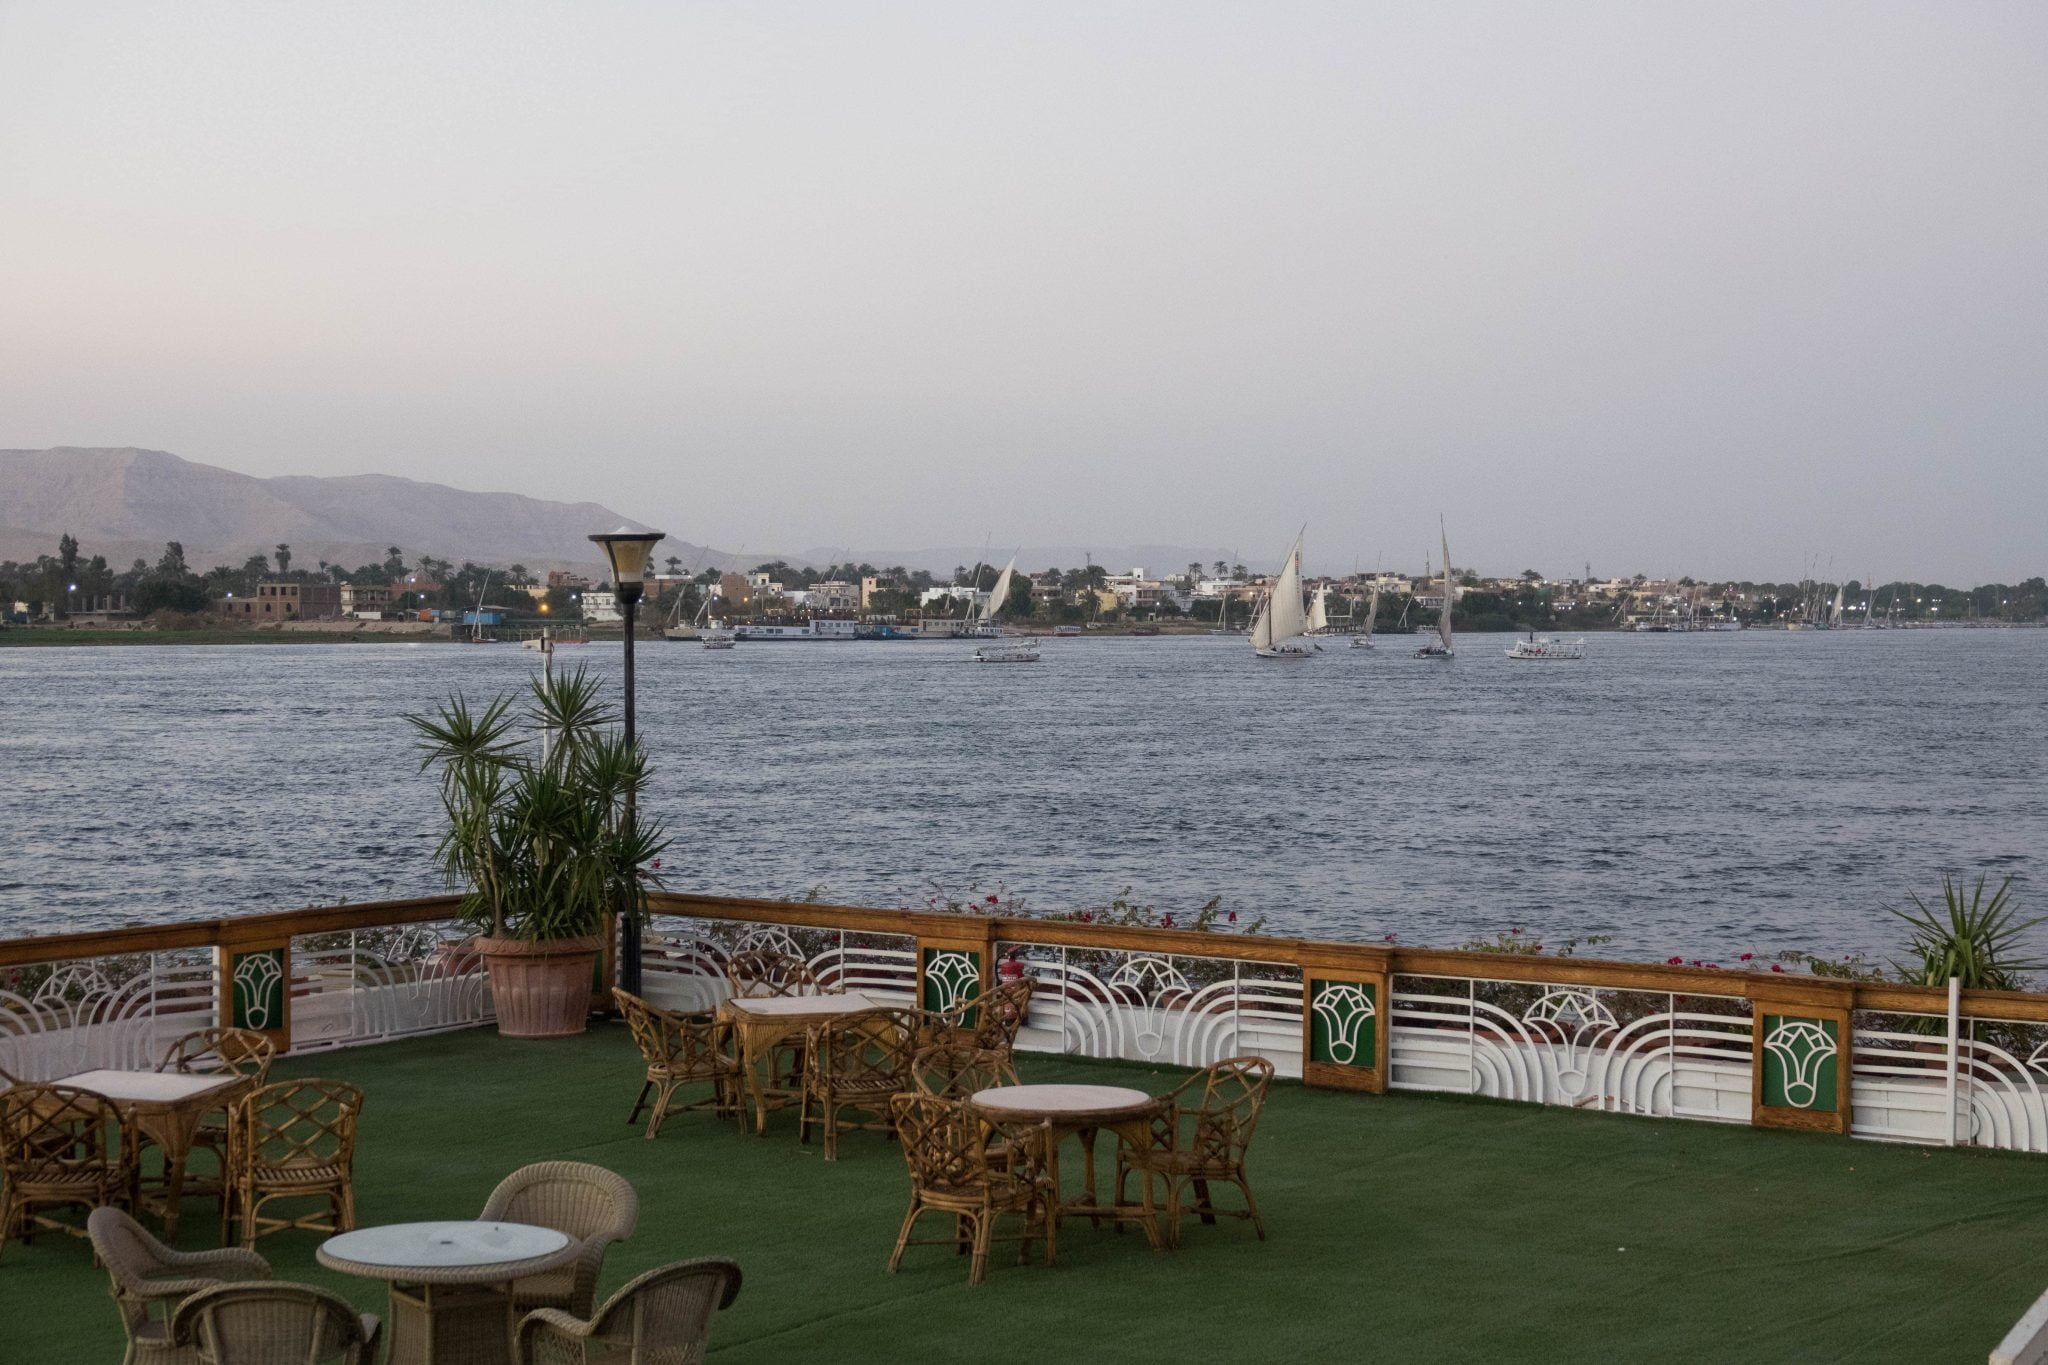 Luxor Guide - Nile River